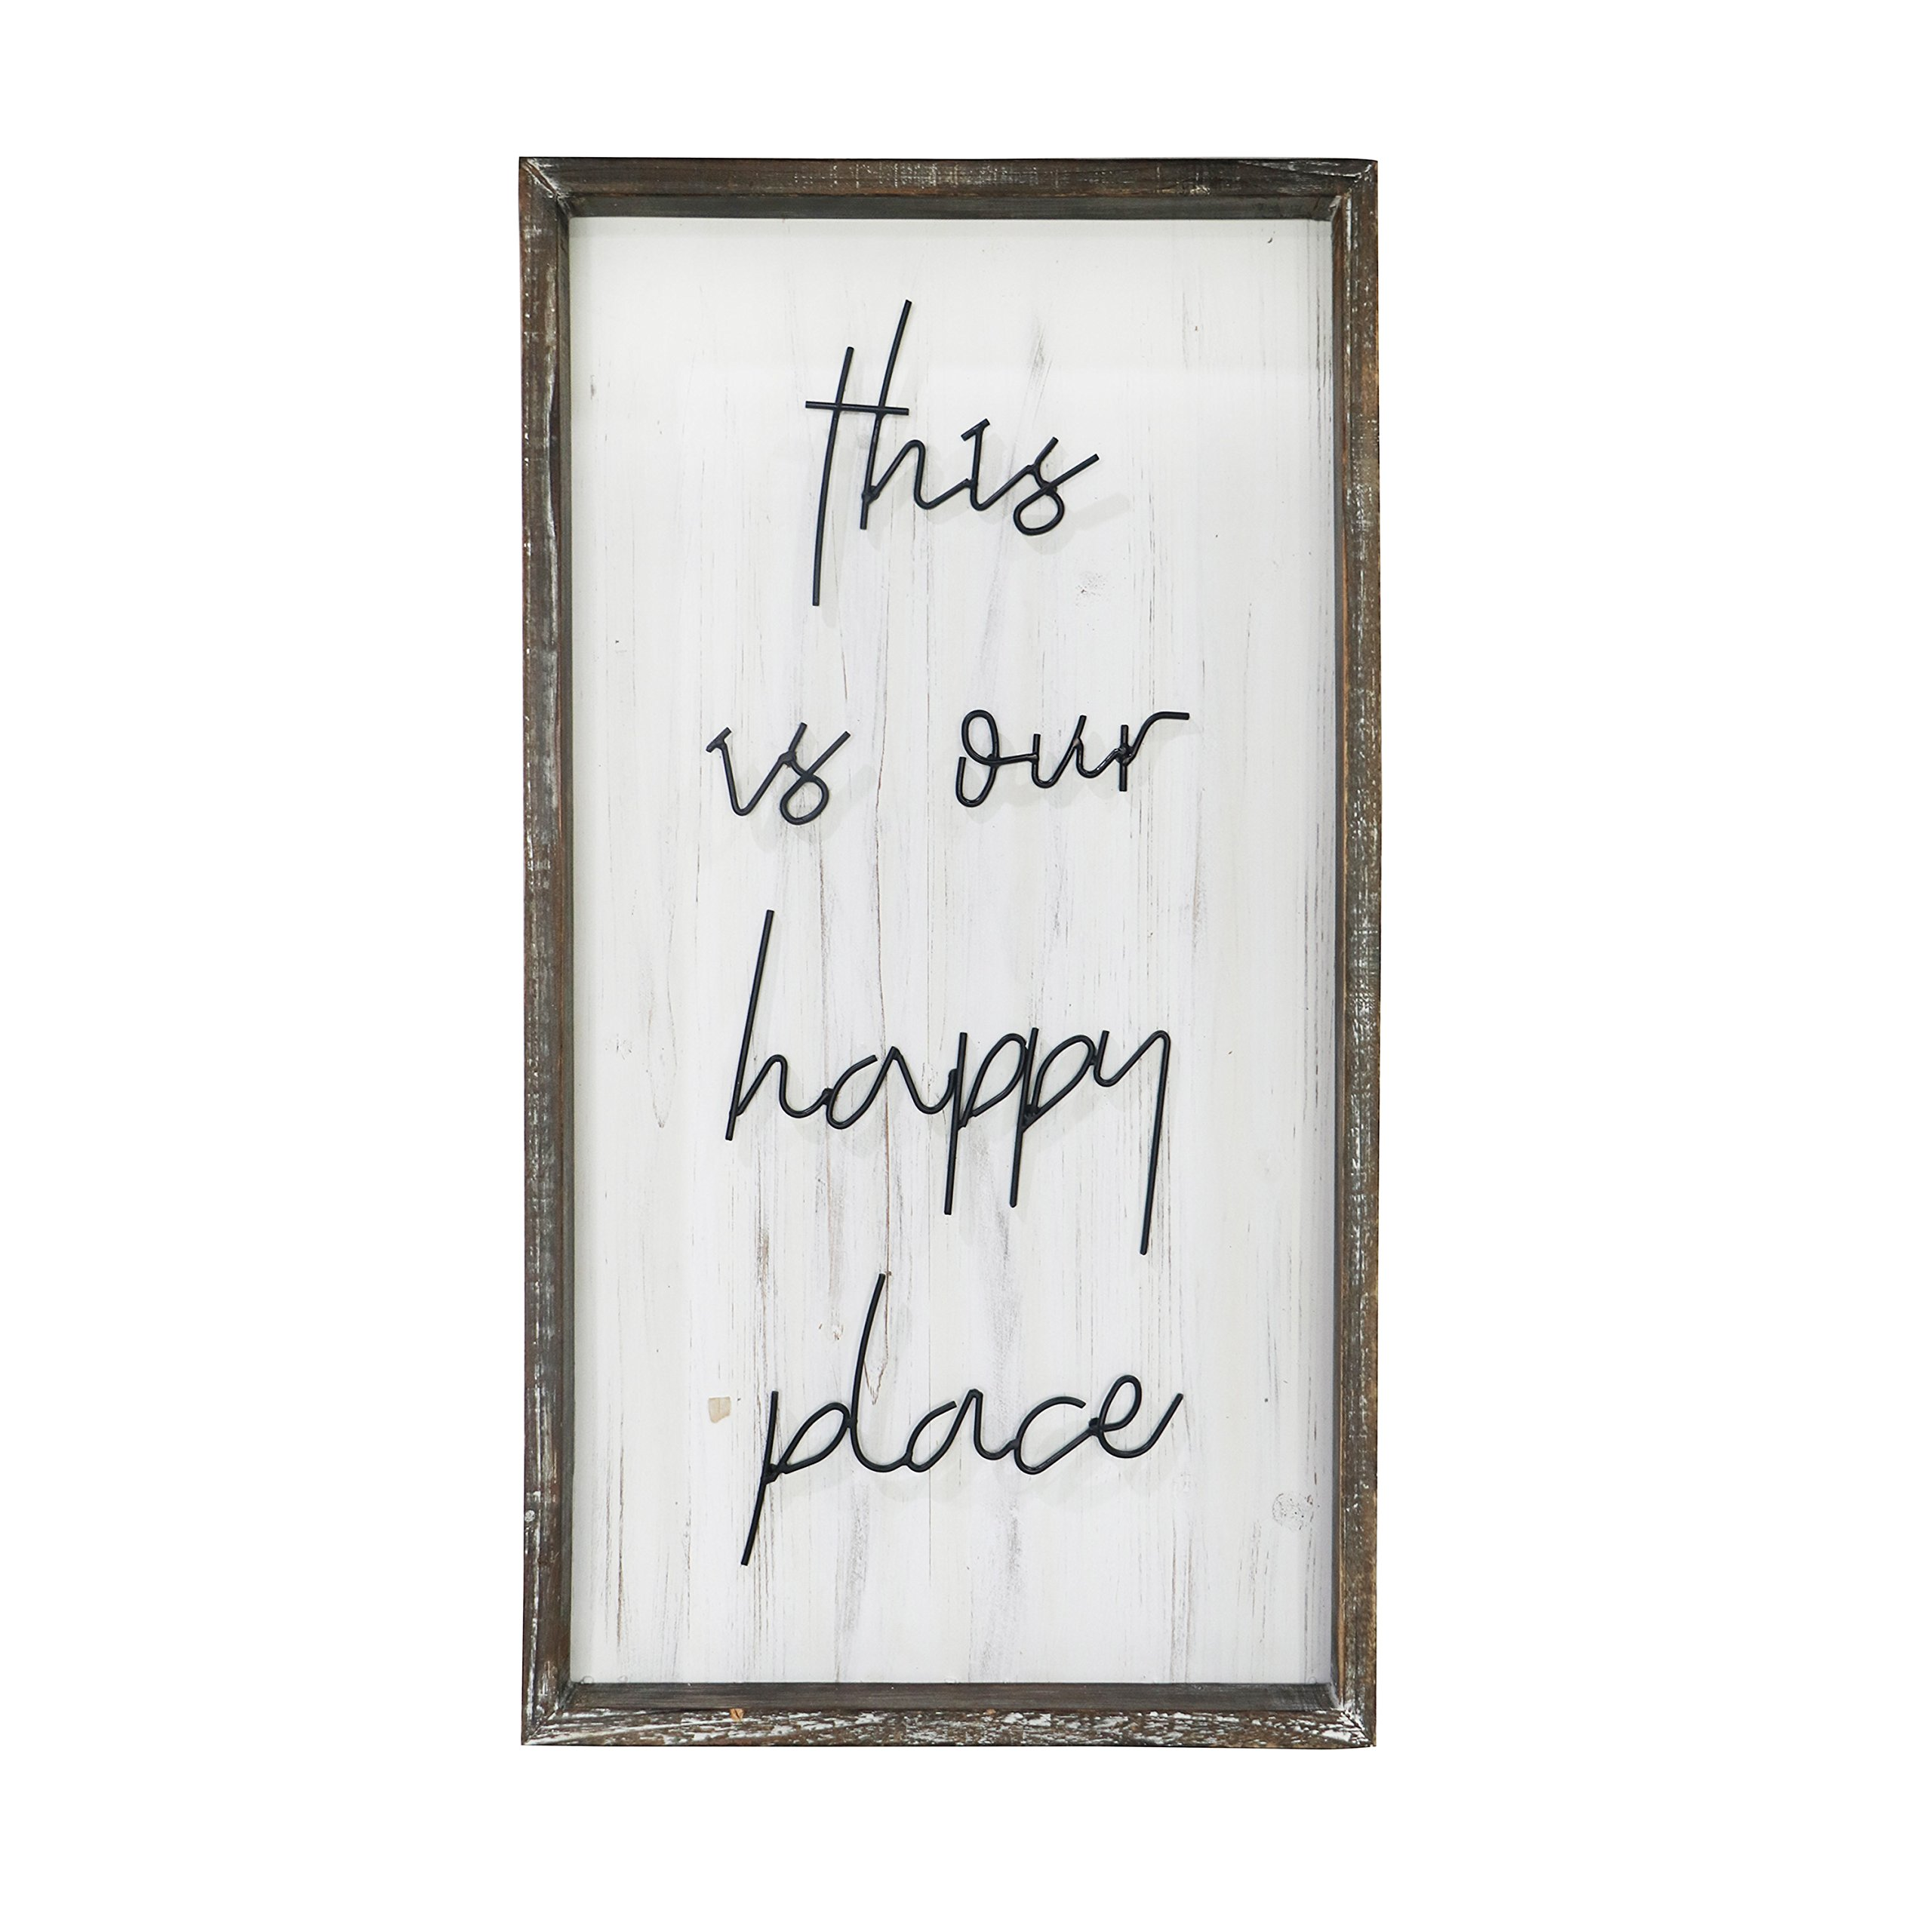 "Barnyard Designs This is Our Happy Place Wall Sign, Rustic Decorative Hanging Wood Sign Home Decor 30'' x 16.5"" by Barnyard Designs"